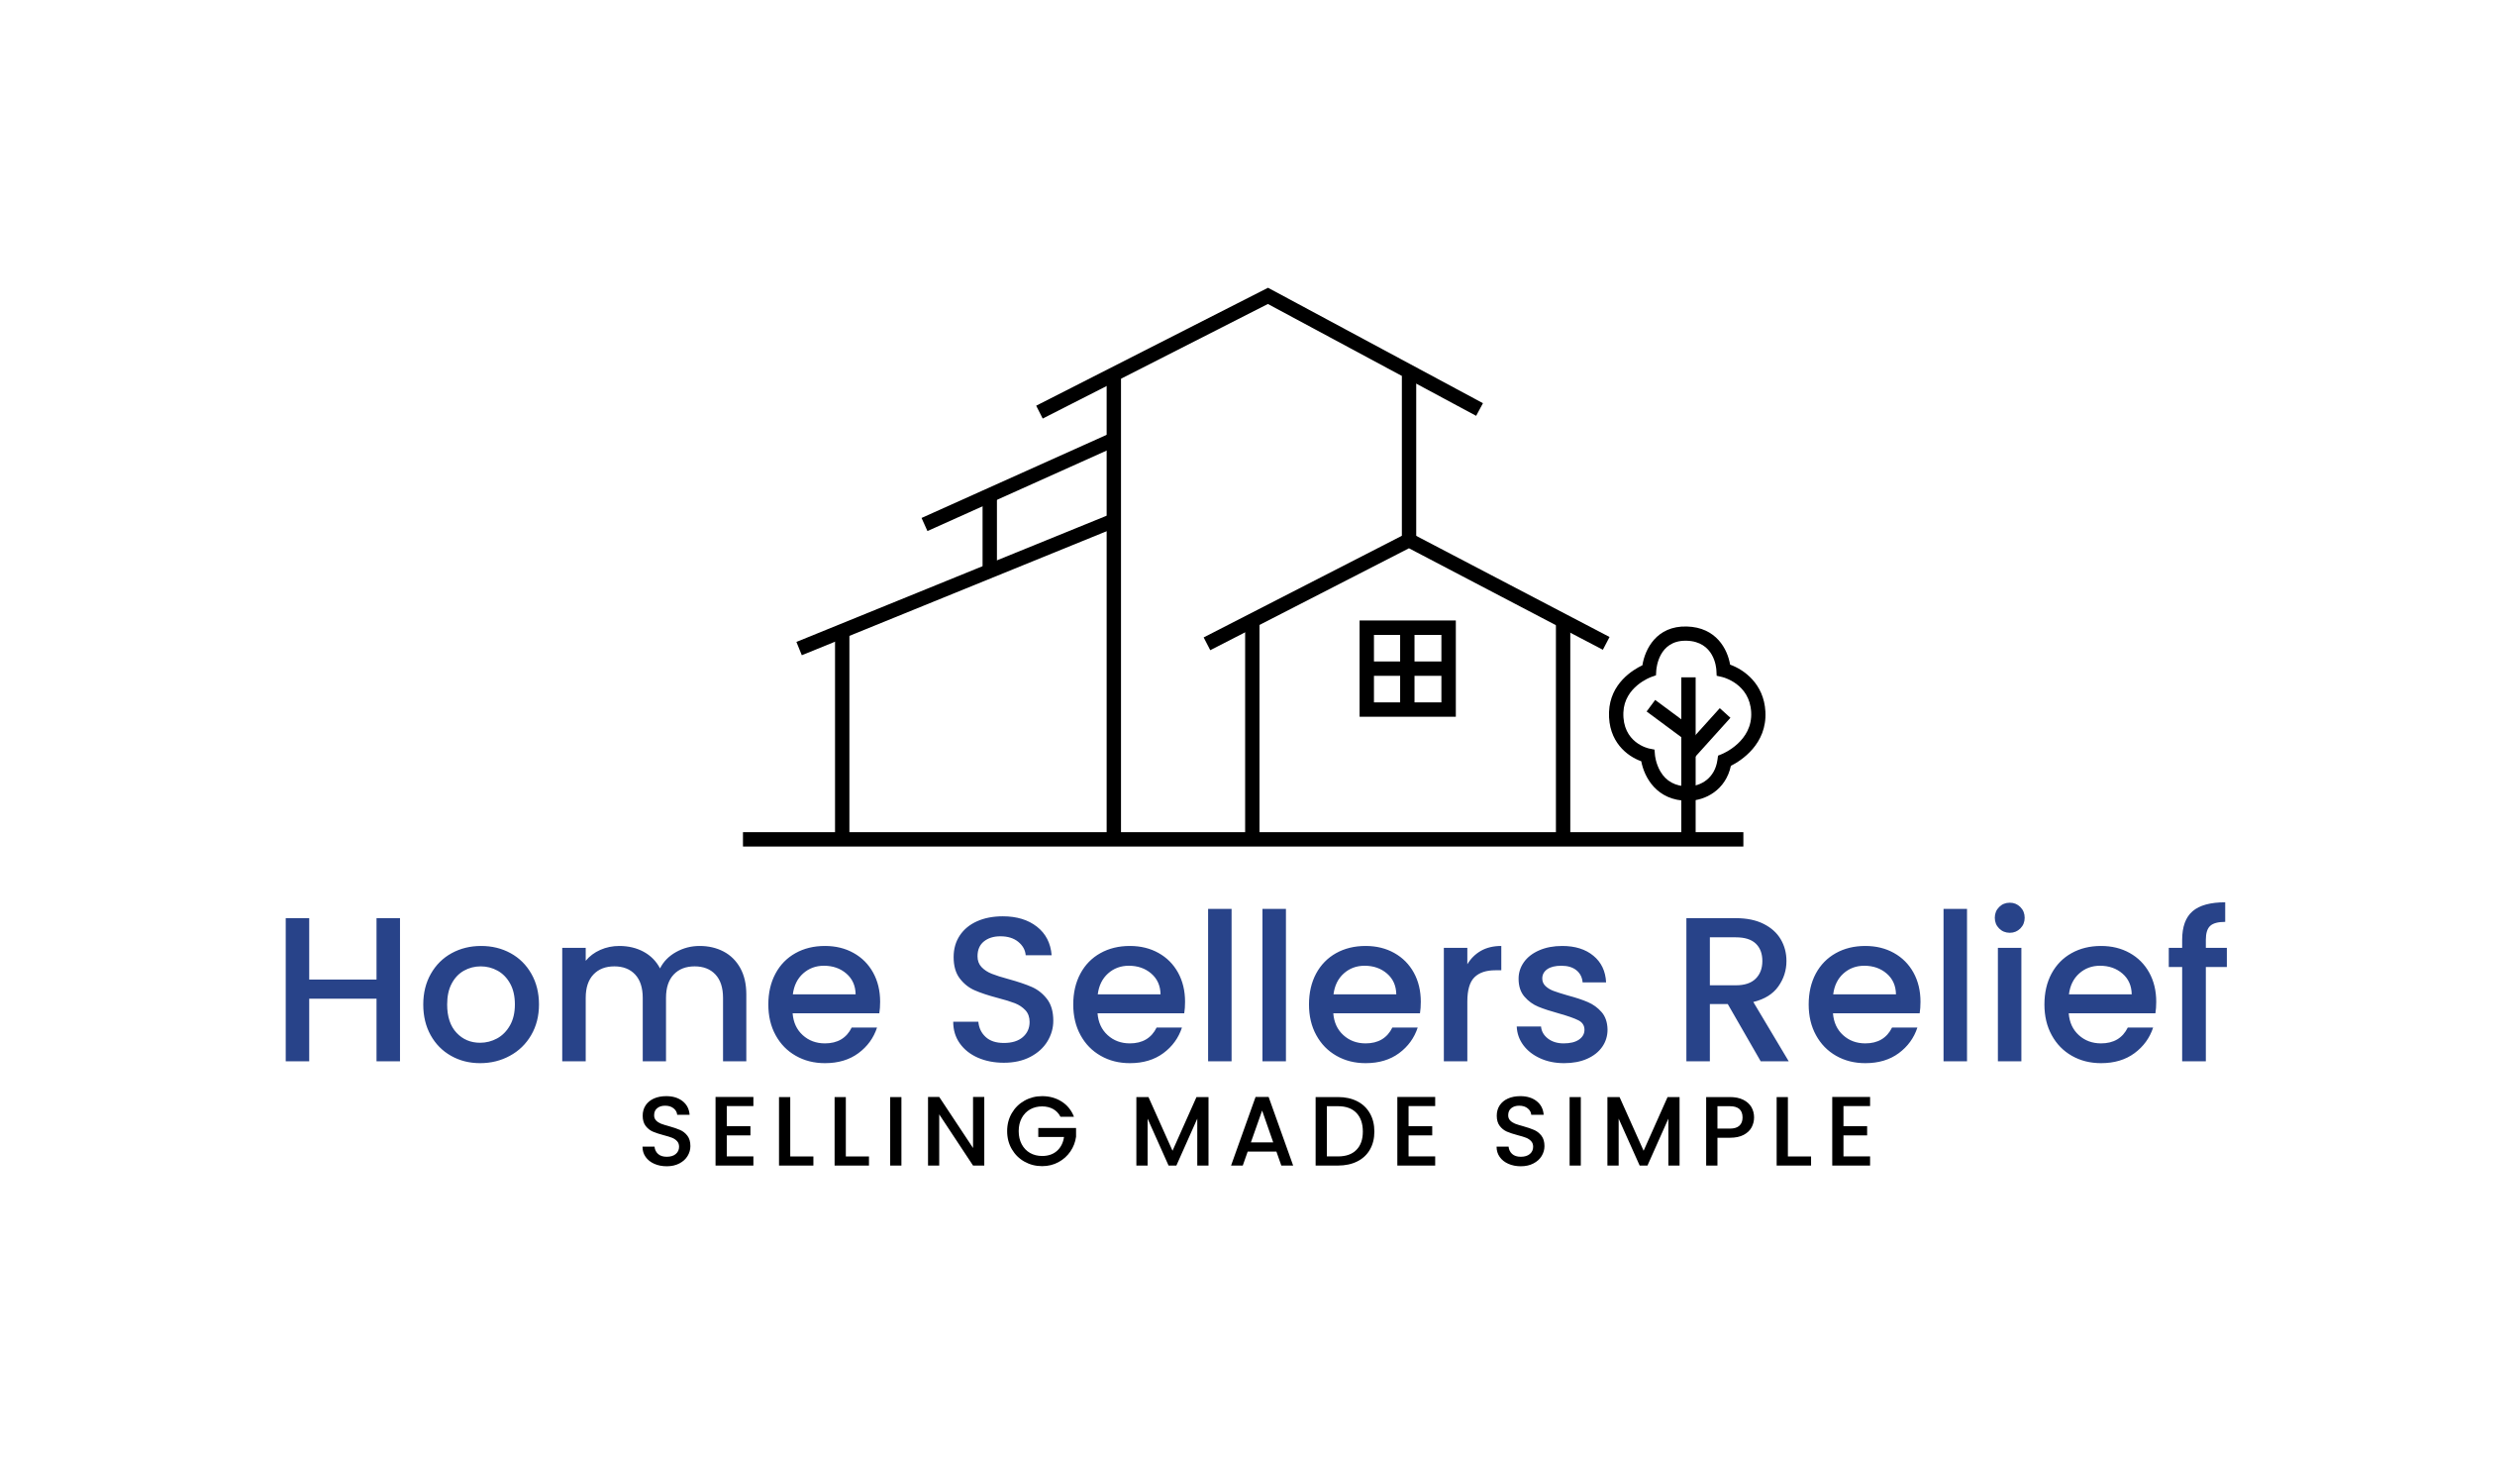 Home Sellers Relief